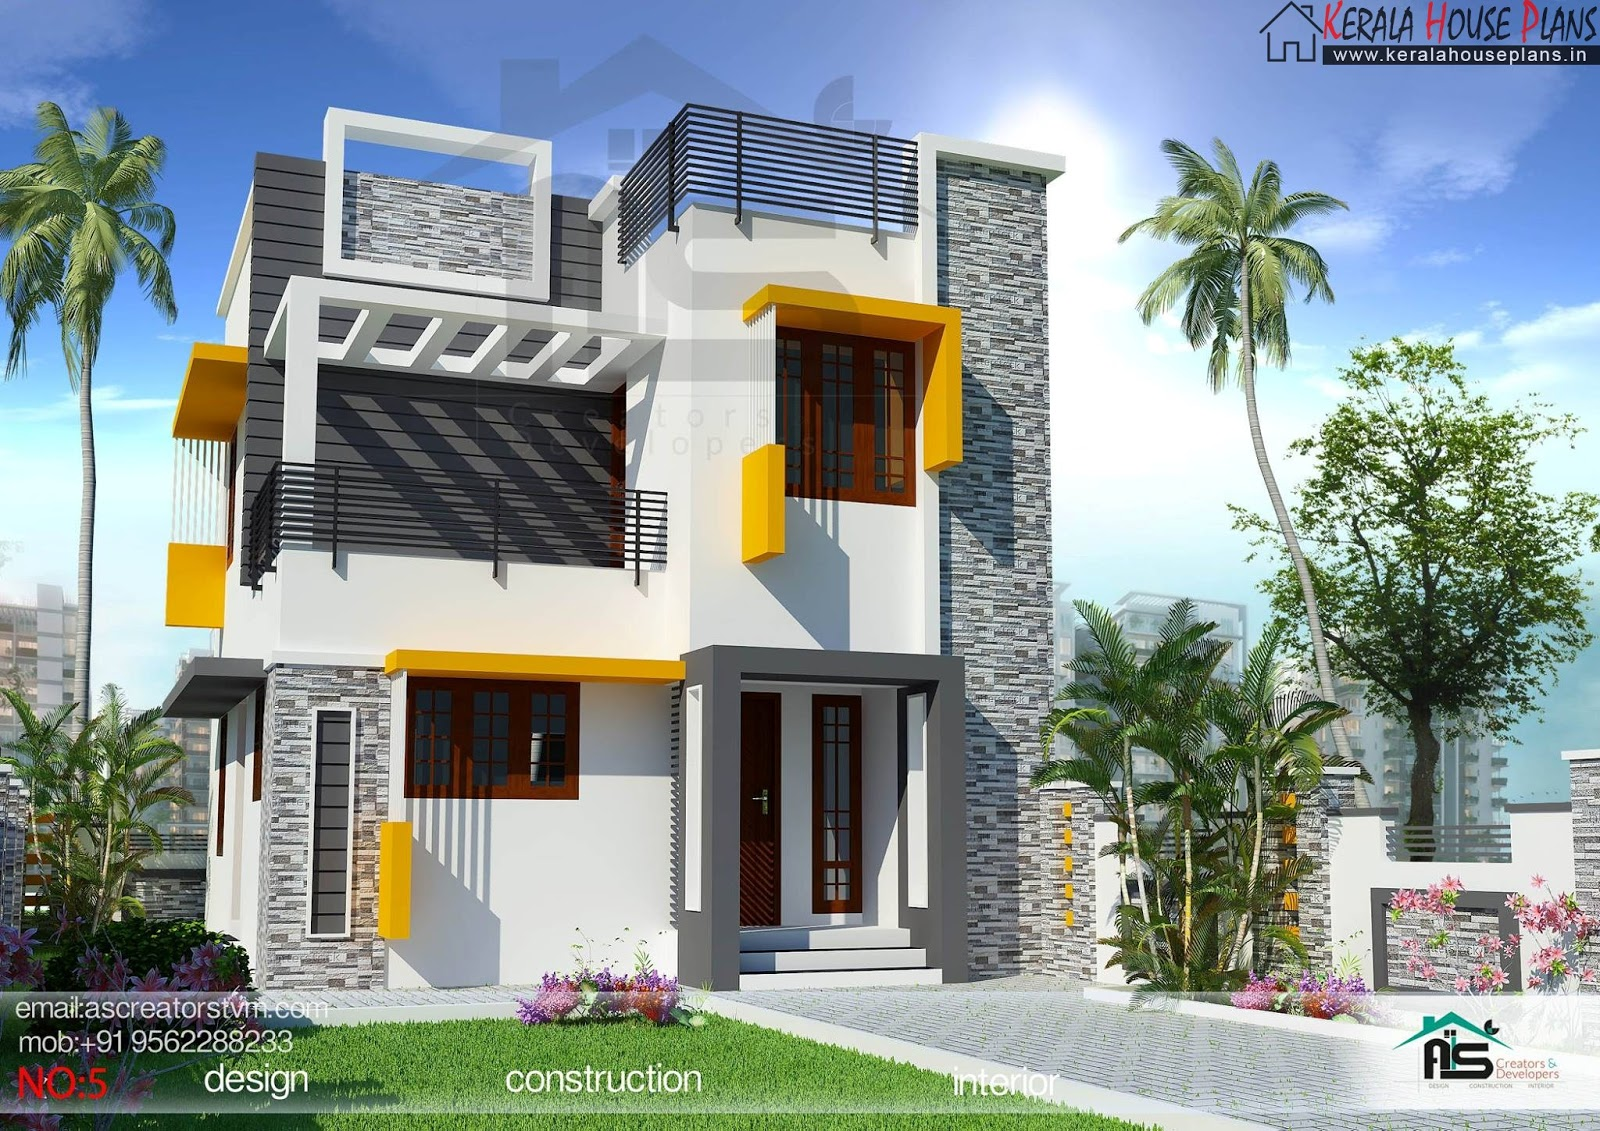 Three bedroom house plan kerala style kerala house plans for Kerala home style 3 bedroom